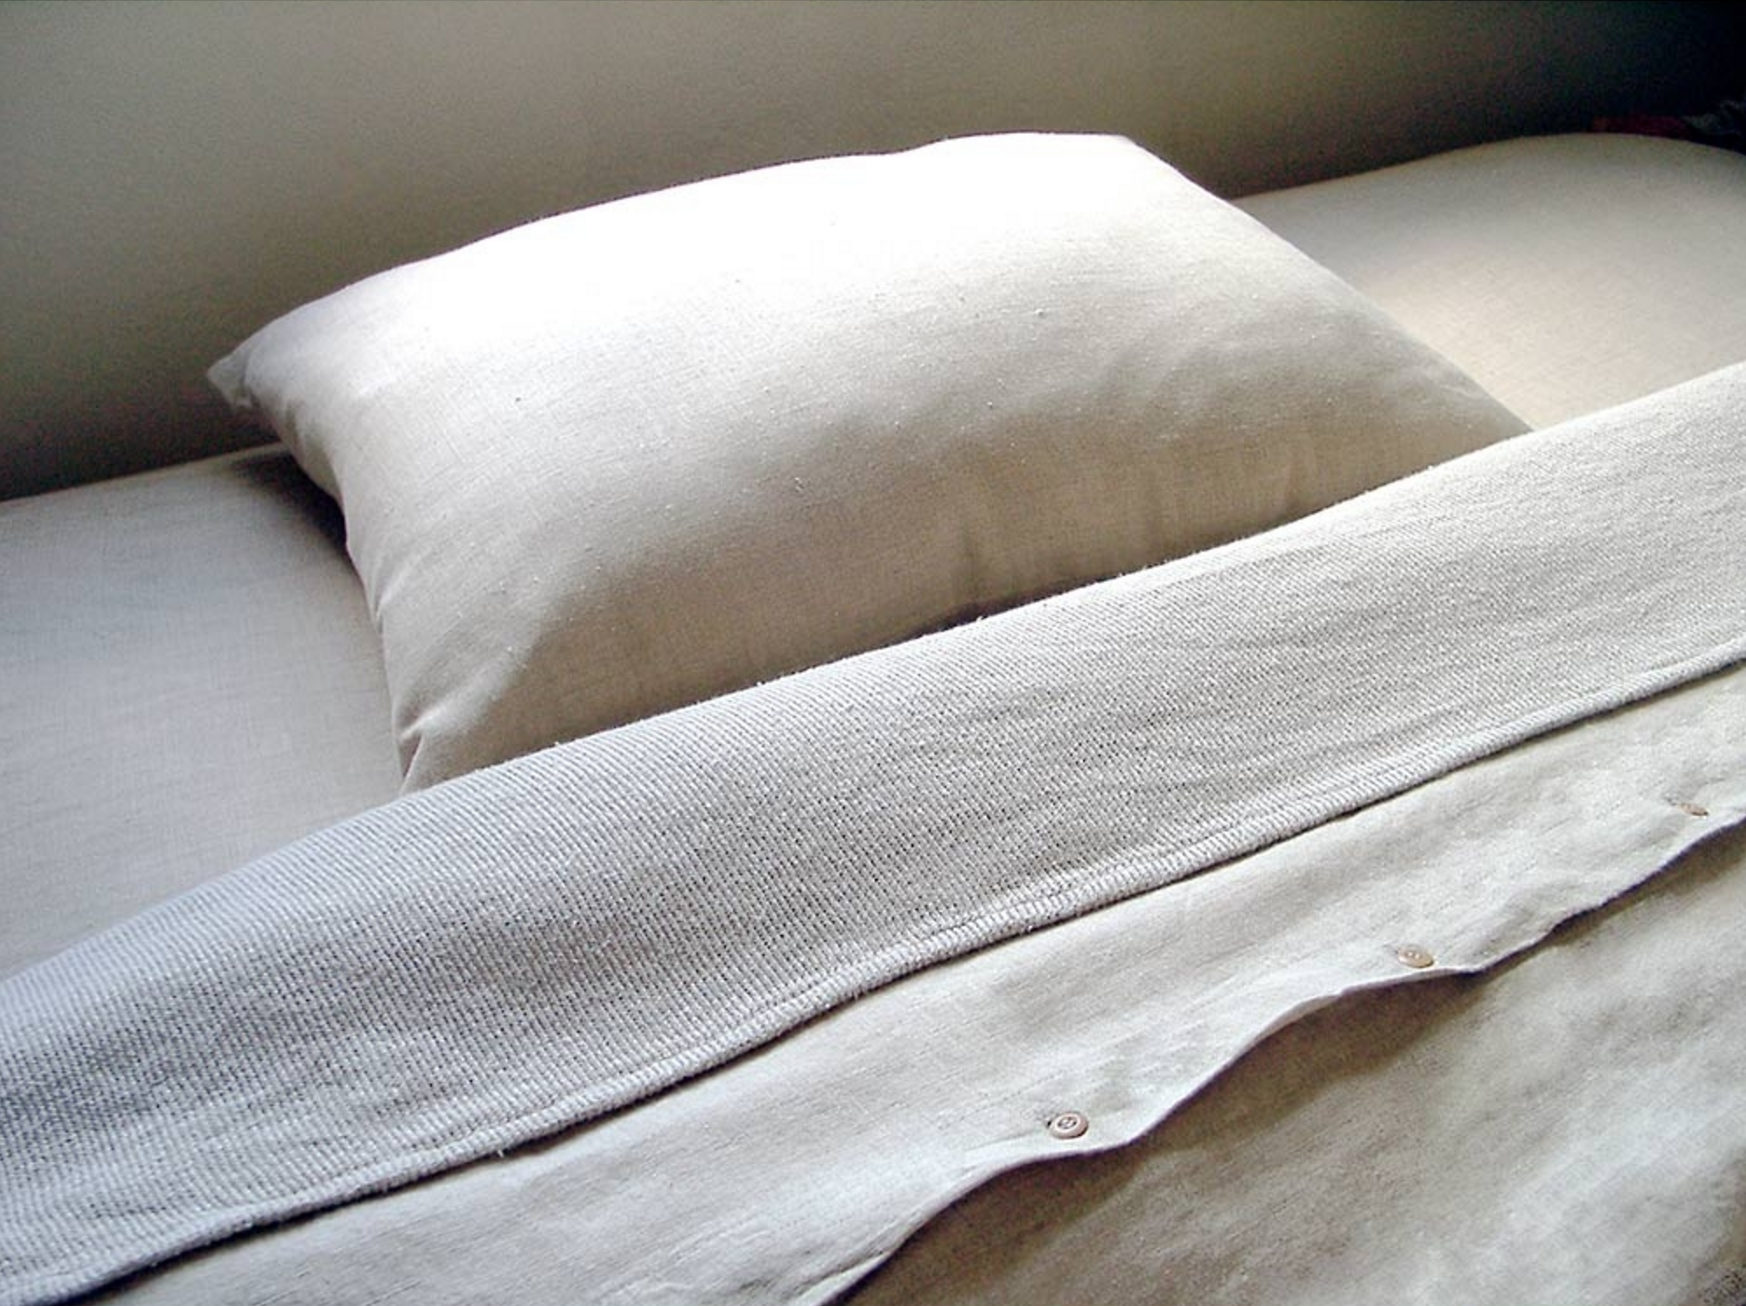 Organic Hemp Sheets by Rawganique   | 11 SIMPLE & SUSTAINABLE SHEET SETS